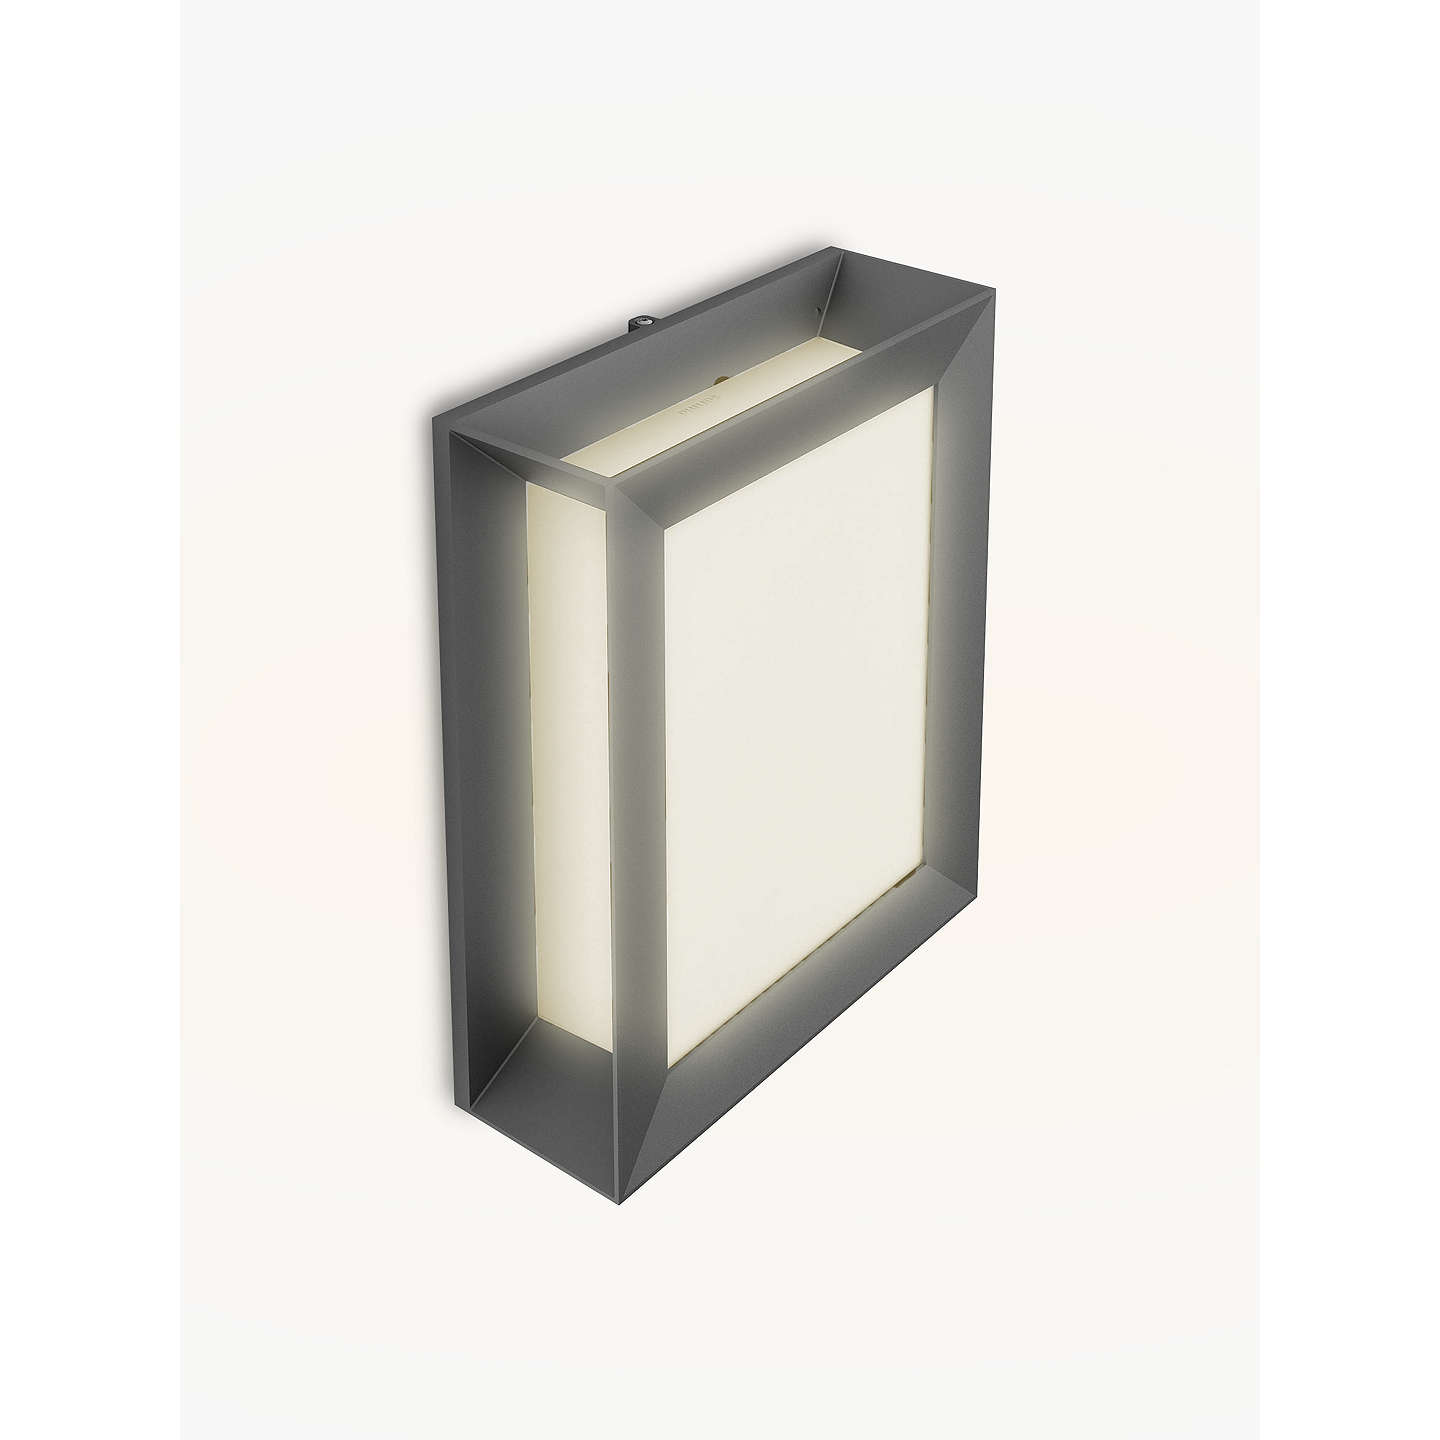 Philips Led Outdoor Lighting Philips karp led outdoor wall light anthracite at john lewis buyphilips karp led outdoor wall light anthracite online at johnlewis workwithnaturefo